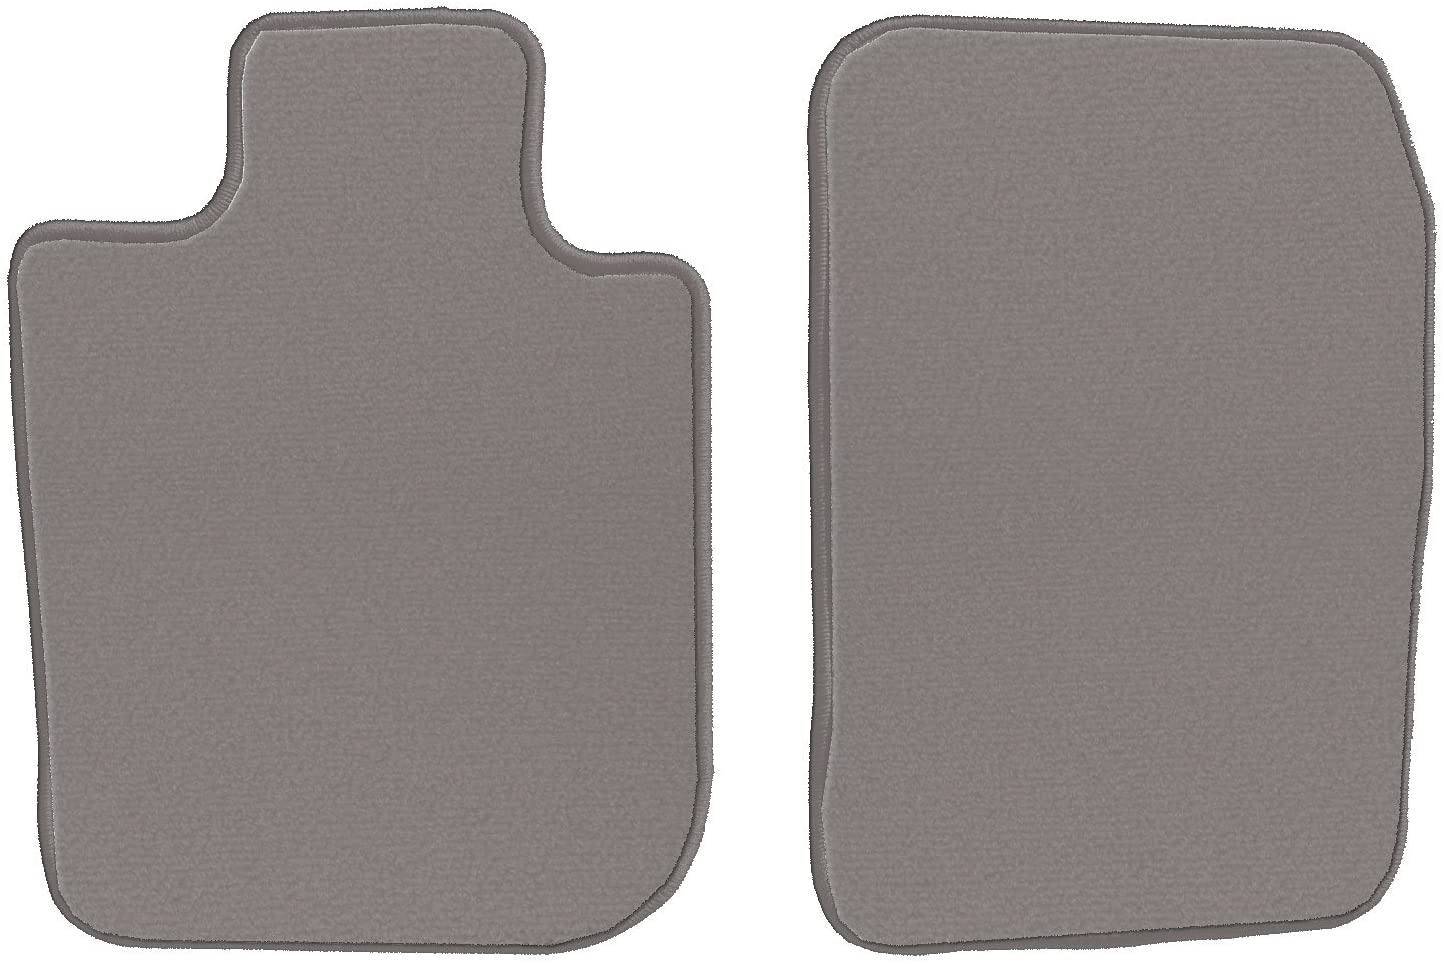 GGBAILEY Grey Loop Driver & Passenger Floor Mats Custom-Fit for Porsche 911 1994-1997